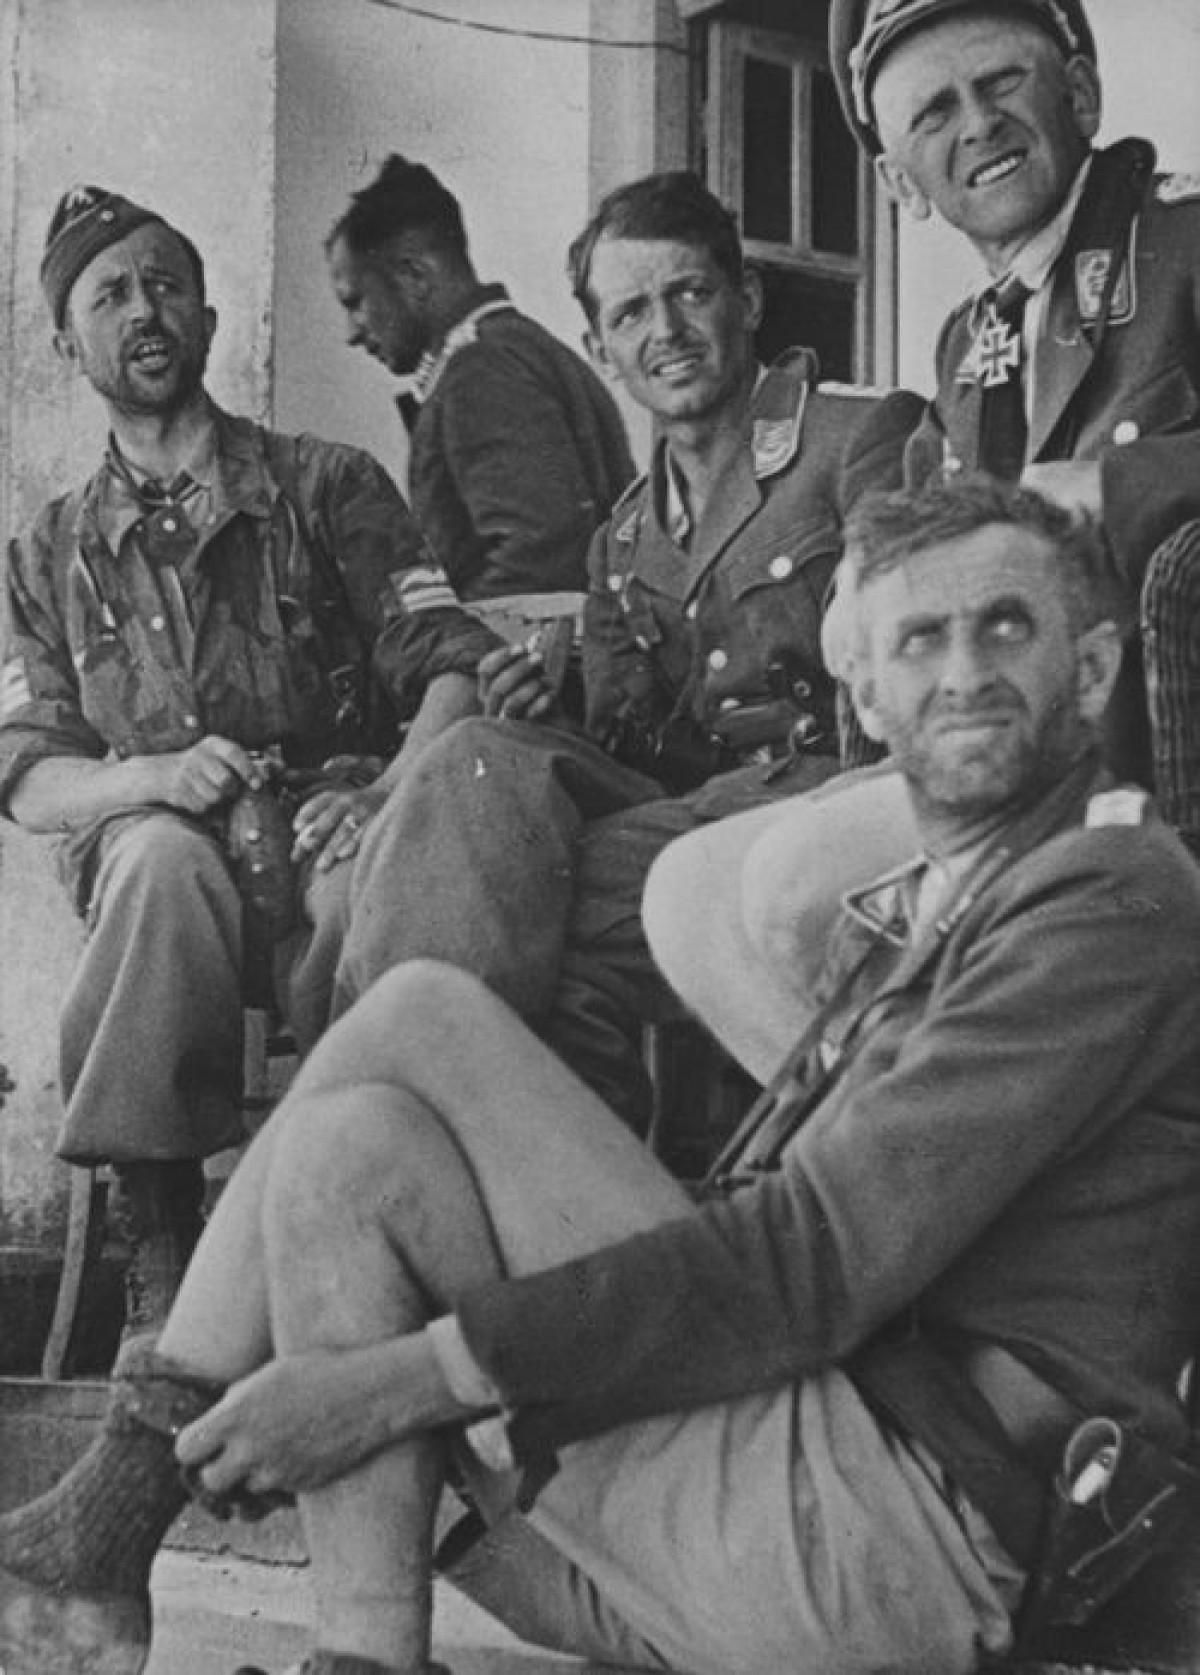 Ragged looking group of Luftwaffe officers in Heraklion, Crete